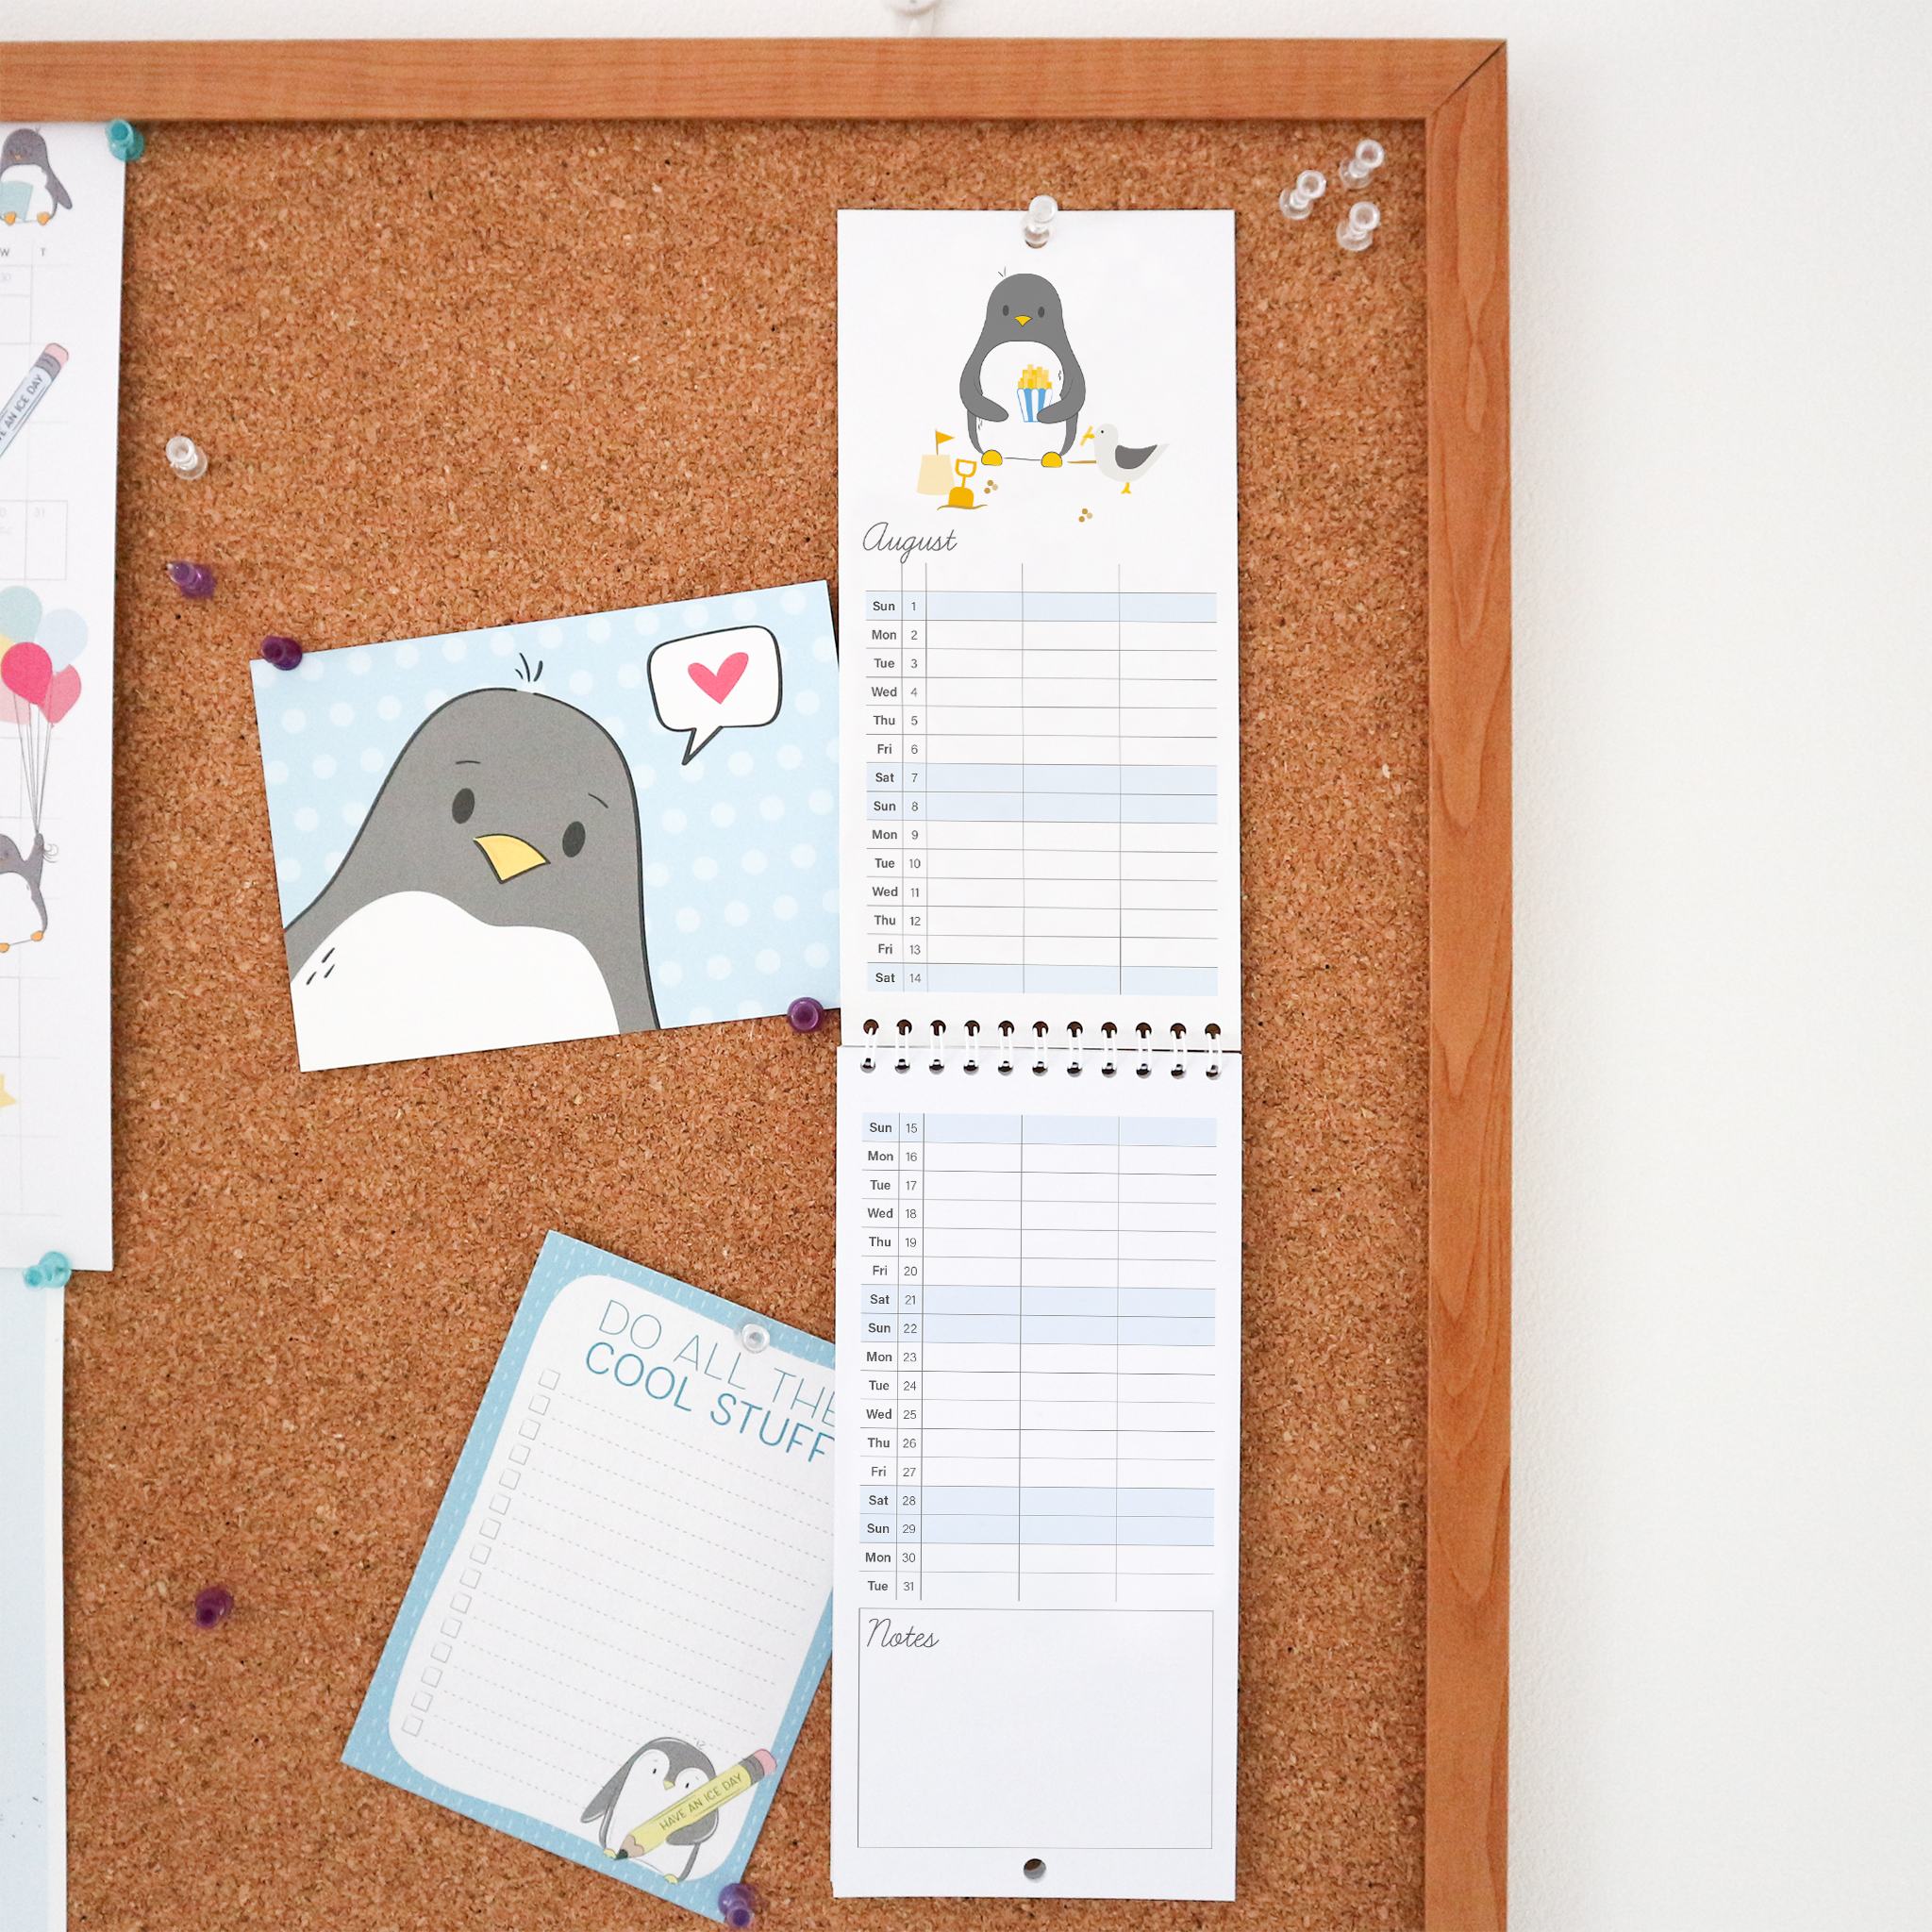 The August calendar page for 2021 is an illustration of penguin eating some chips at the beach and a naughty sea gull has stolen one! This Calendar is a wire bound tall calendar and is styled against a cork board background.